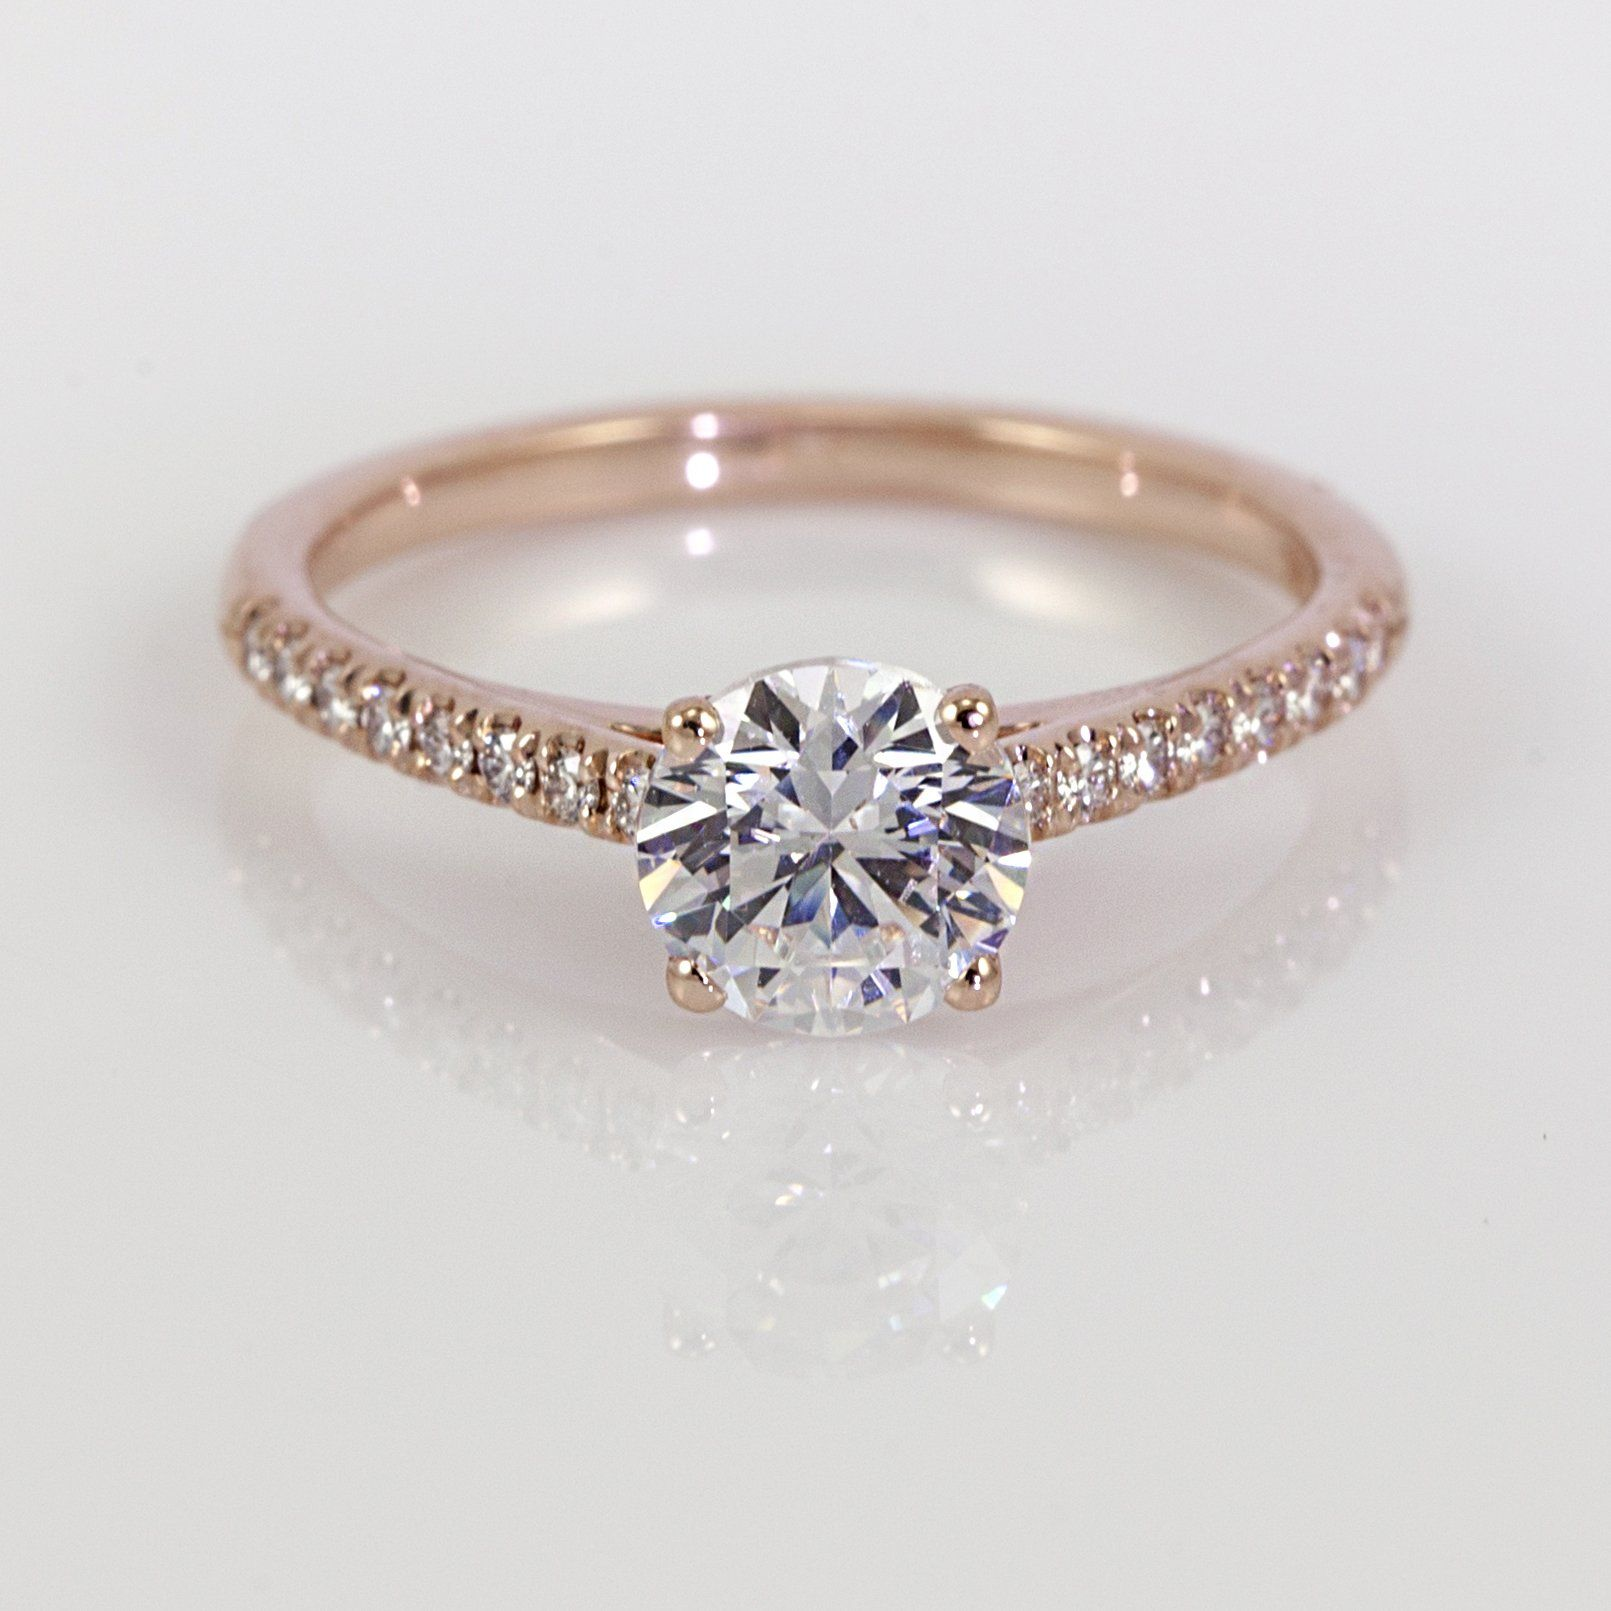 engagement facebook mark home id patterson jewelry rings media markpattersonjewelry